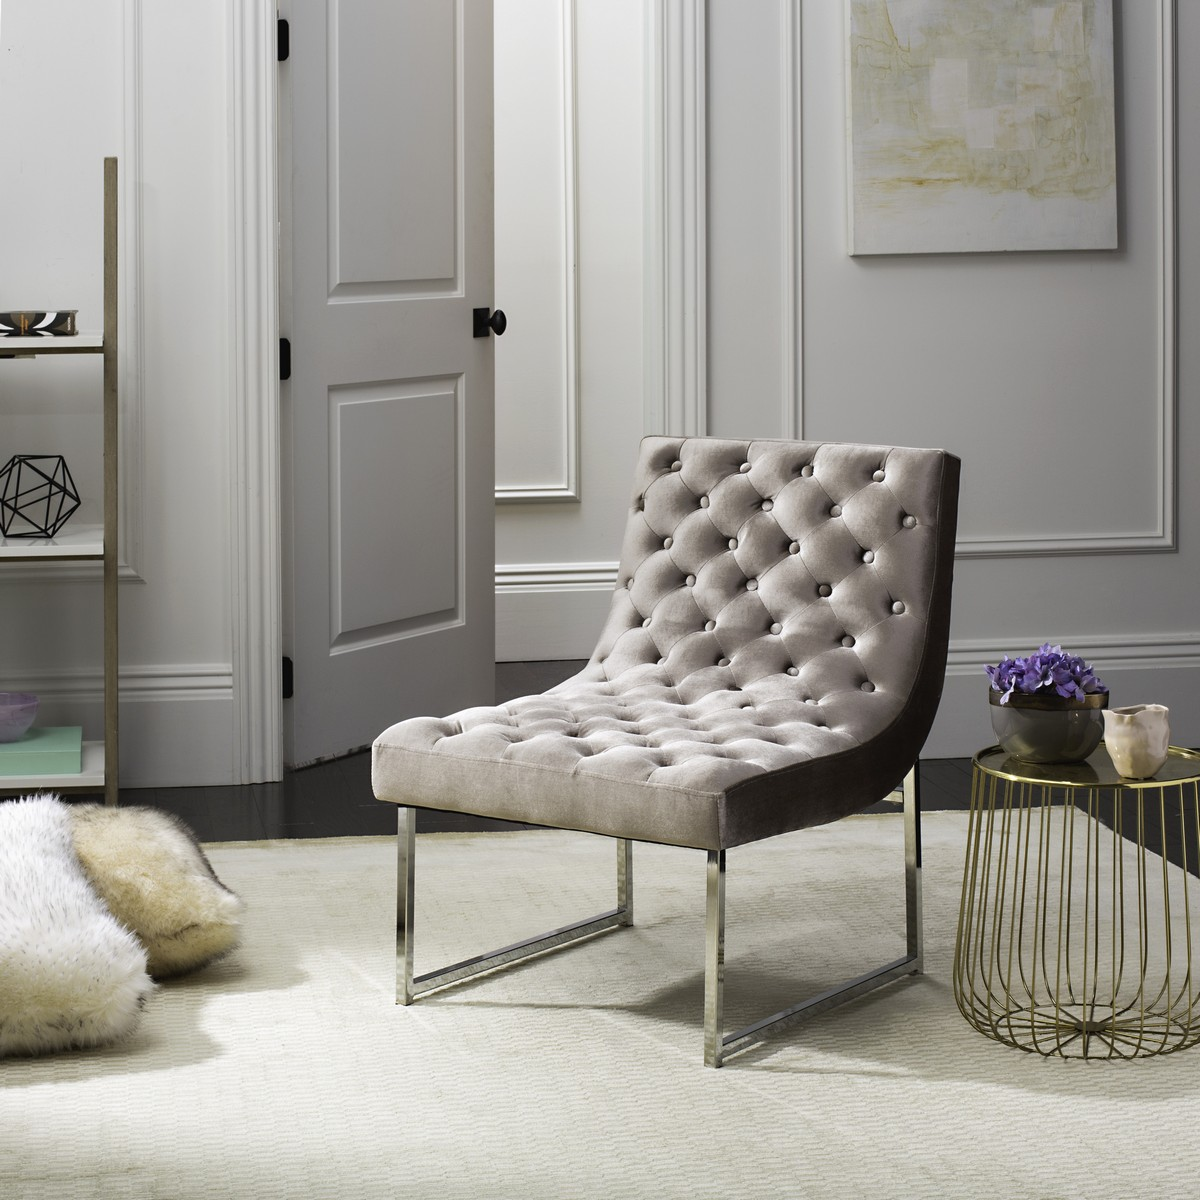 FOX6283A Accent Chairs